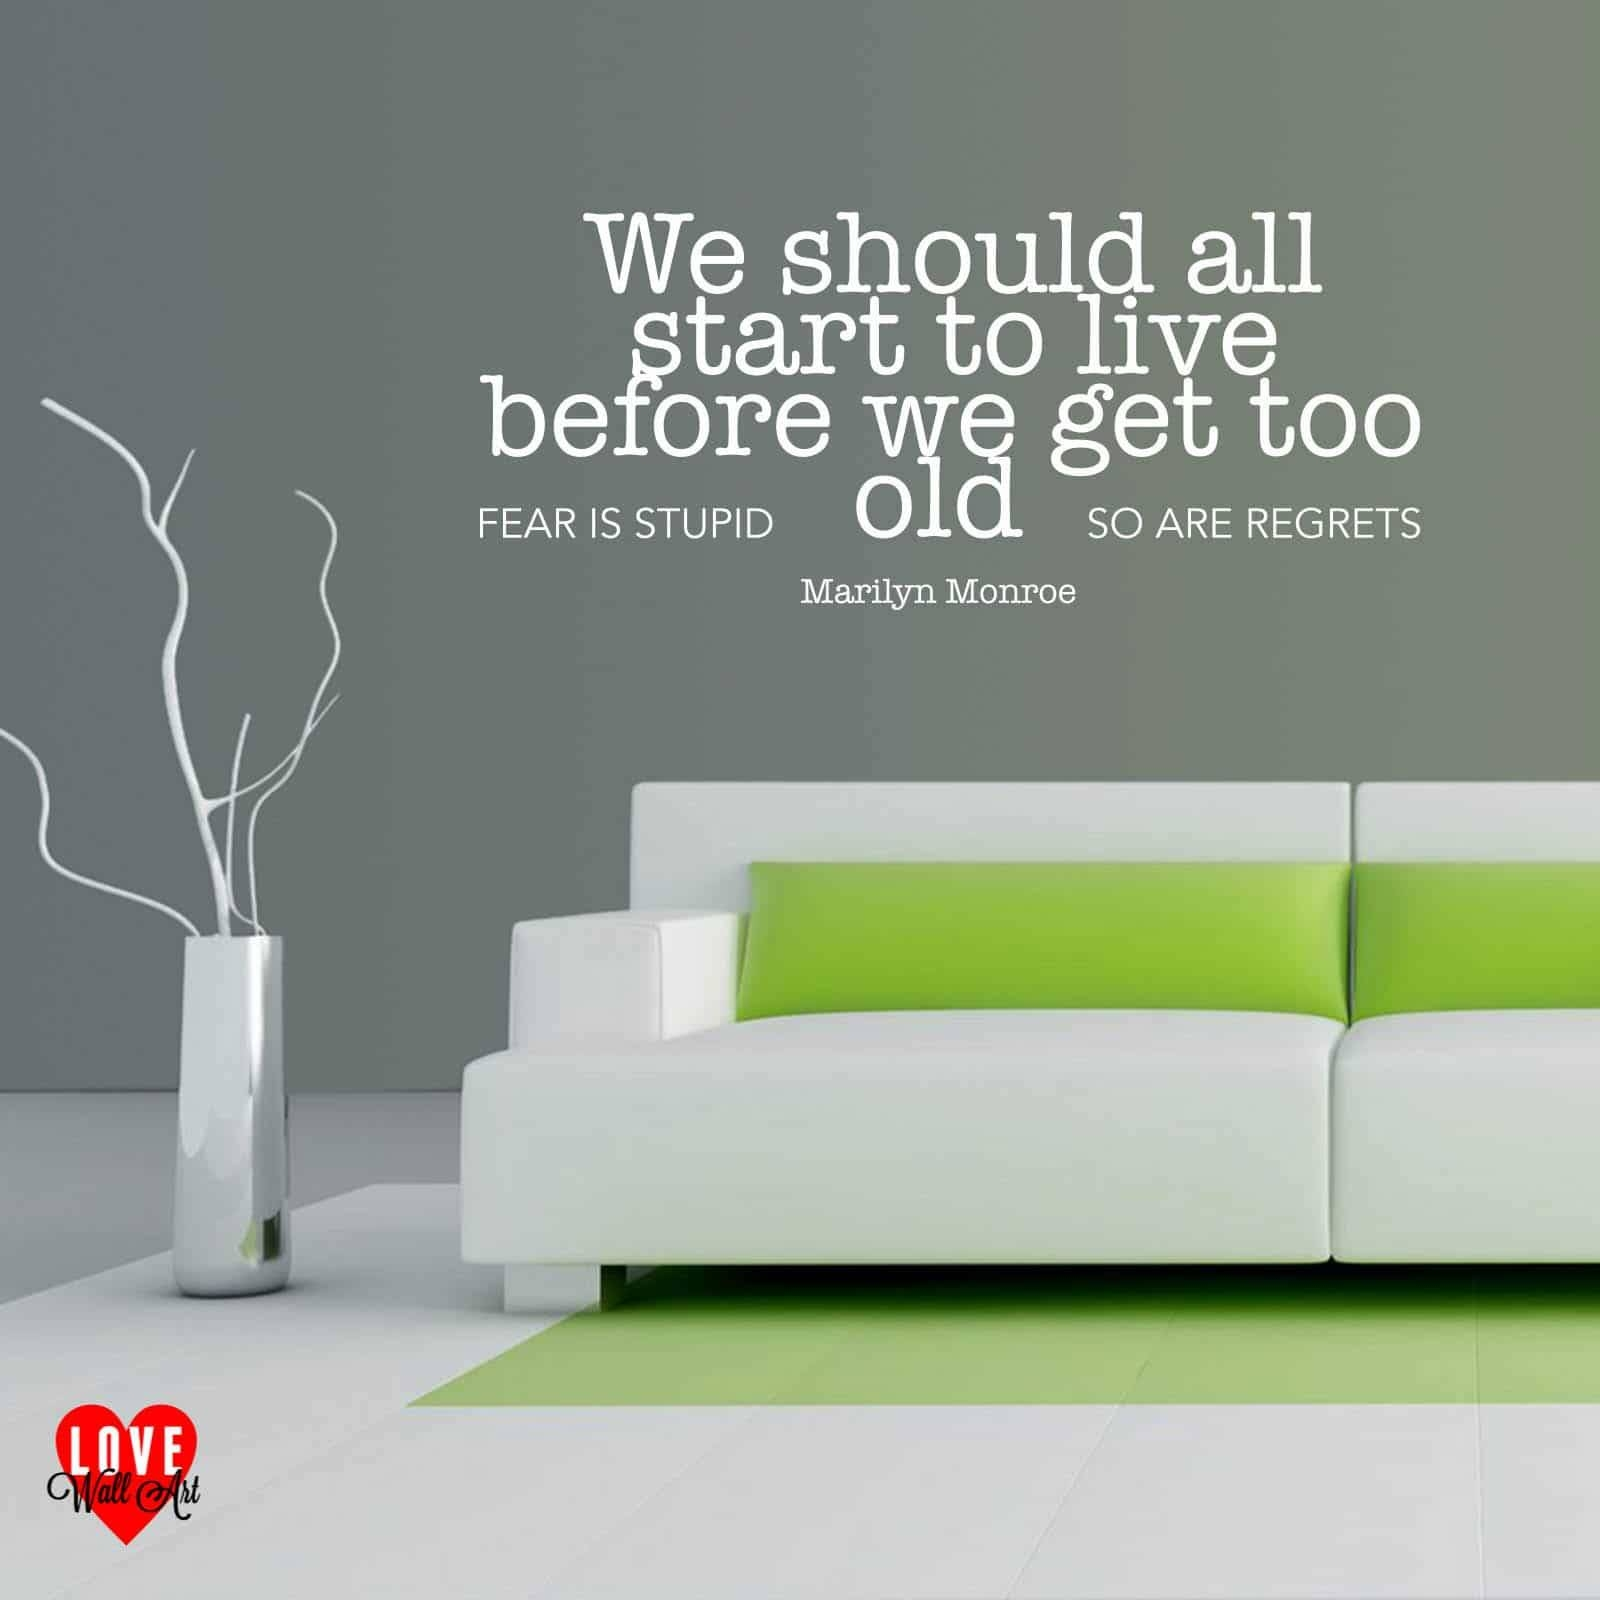 We Should All Start To Live Marilyn Monroe Wall Art Quote Wall Sticker Within Recent Marilyn Monroe Wall Art Quotes (View 4 of 25)